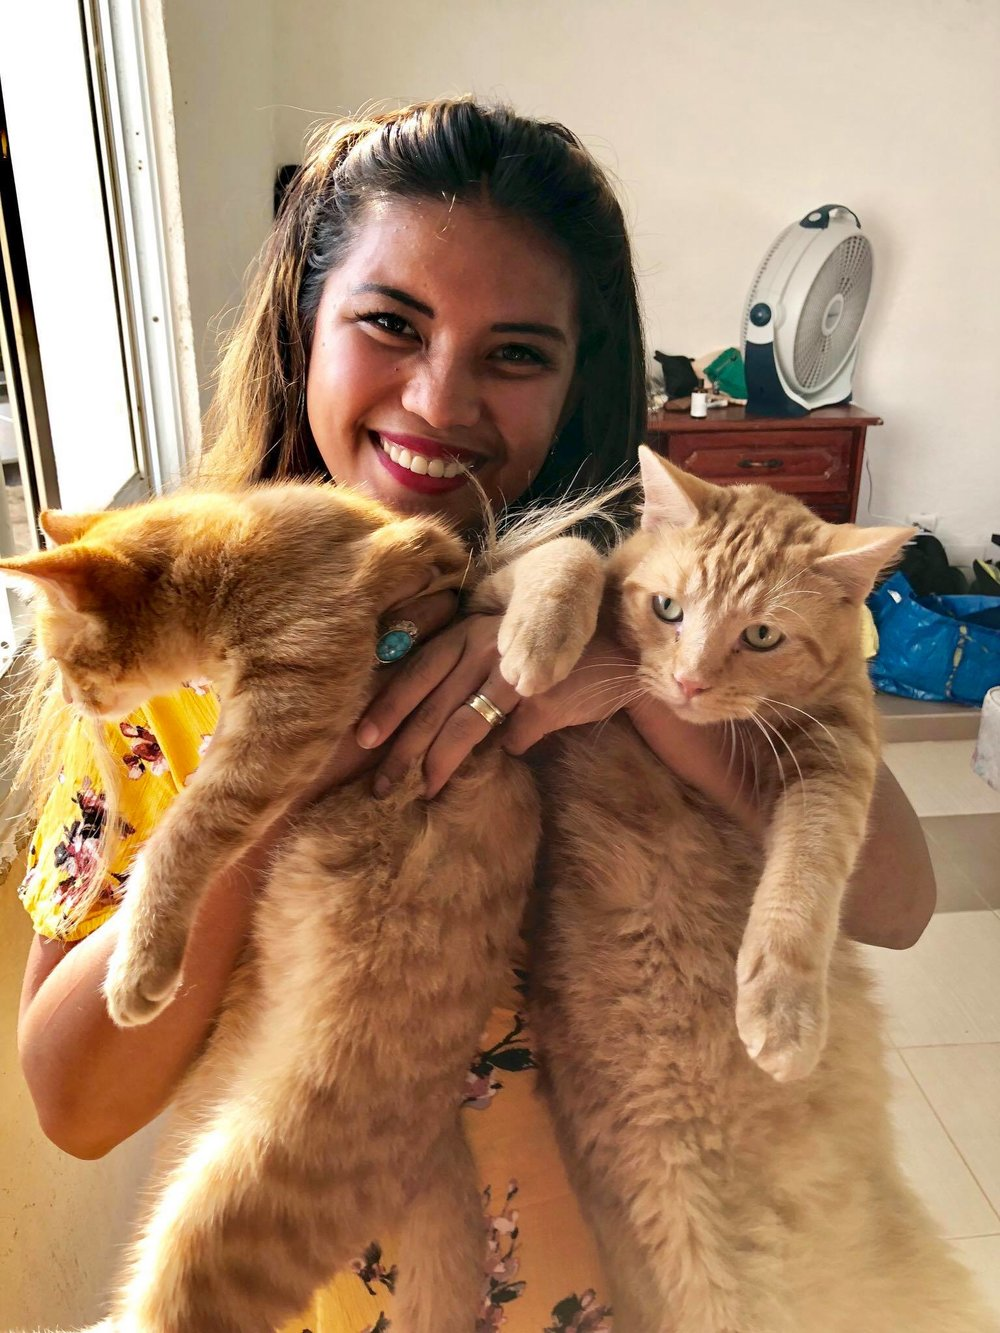 Liveaboard Life Day 245: Home sweet home - back in Luperon with my husband and the cats!